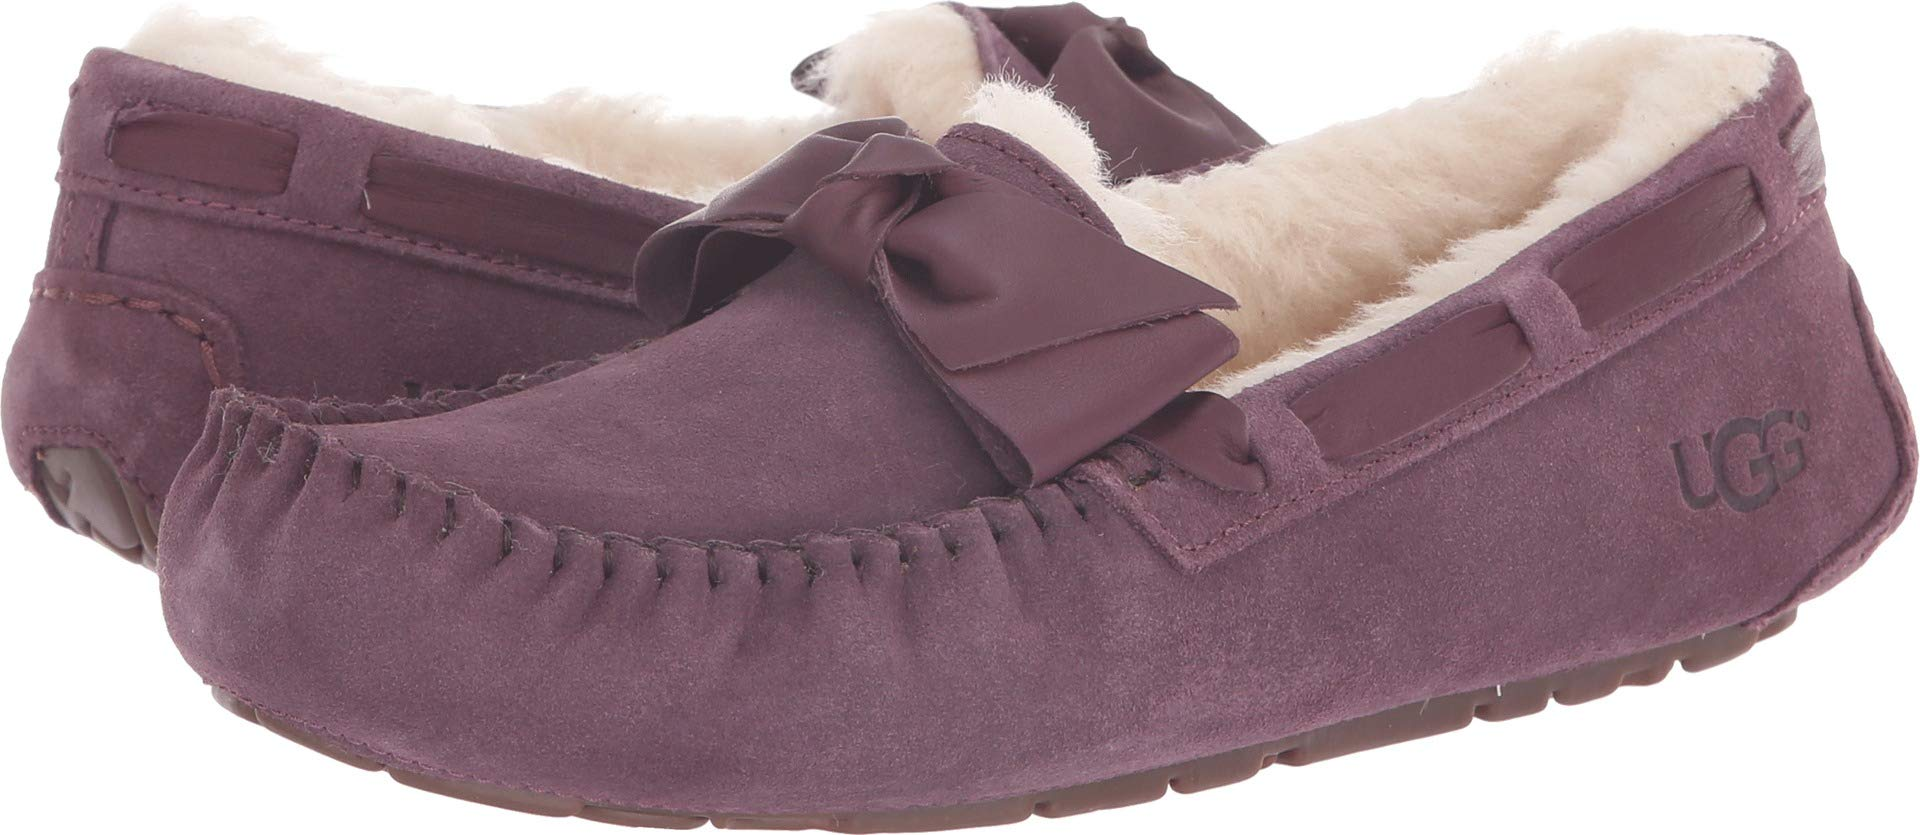 UGG Women's W Dakota Leather Bow Slipper, Port, 9 M US by UGG